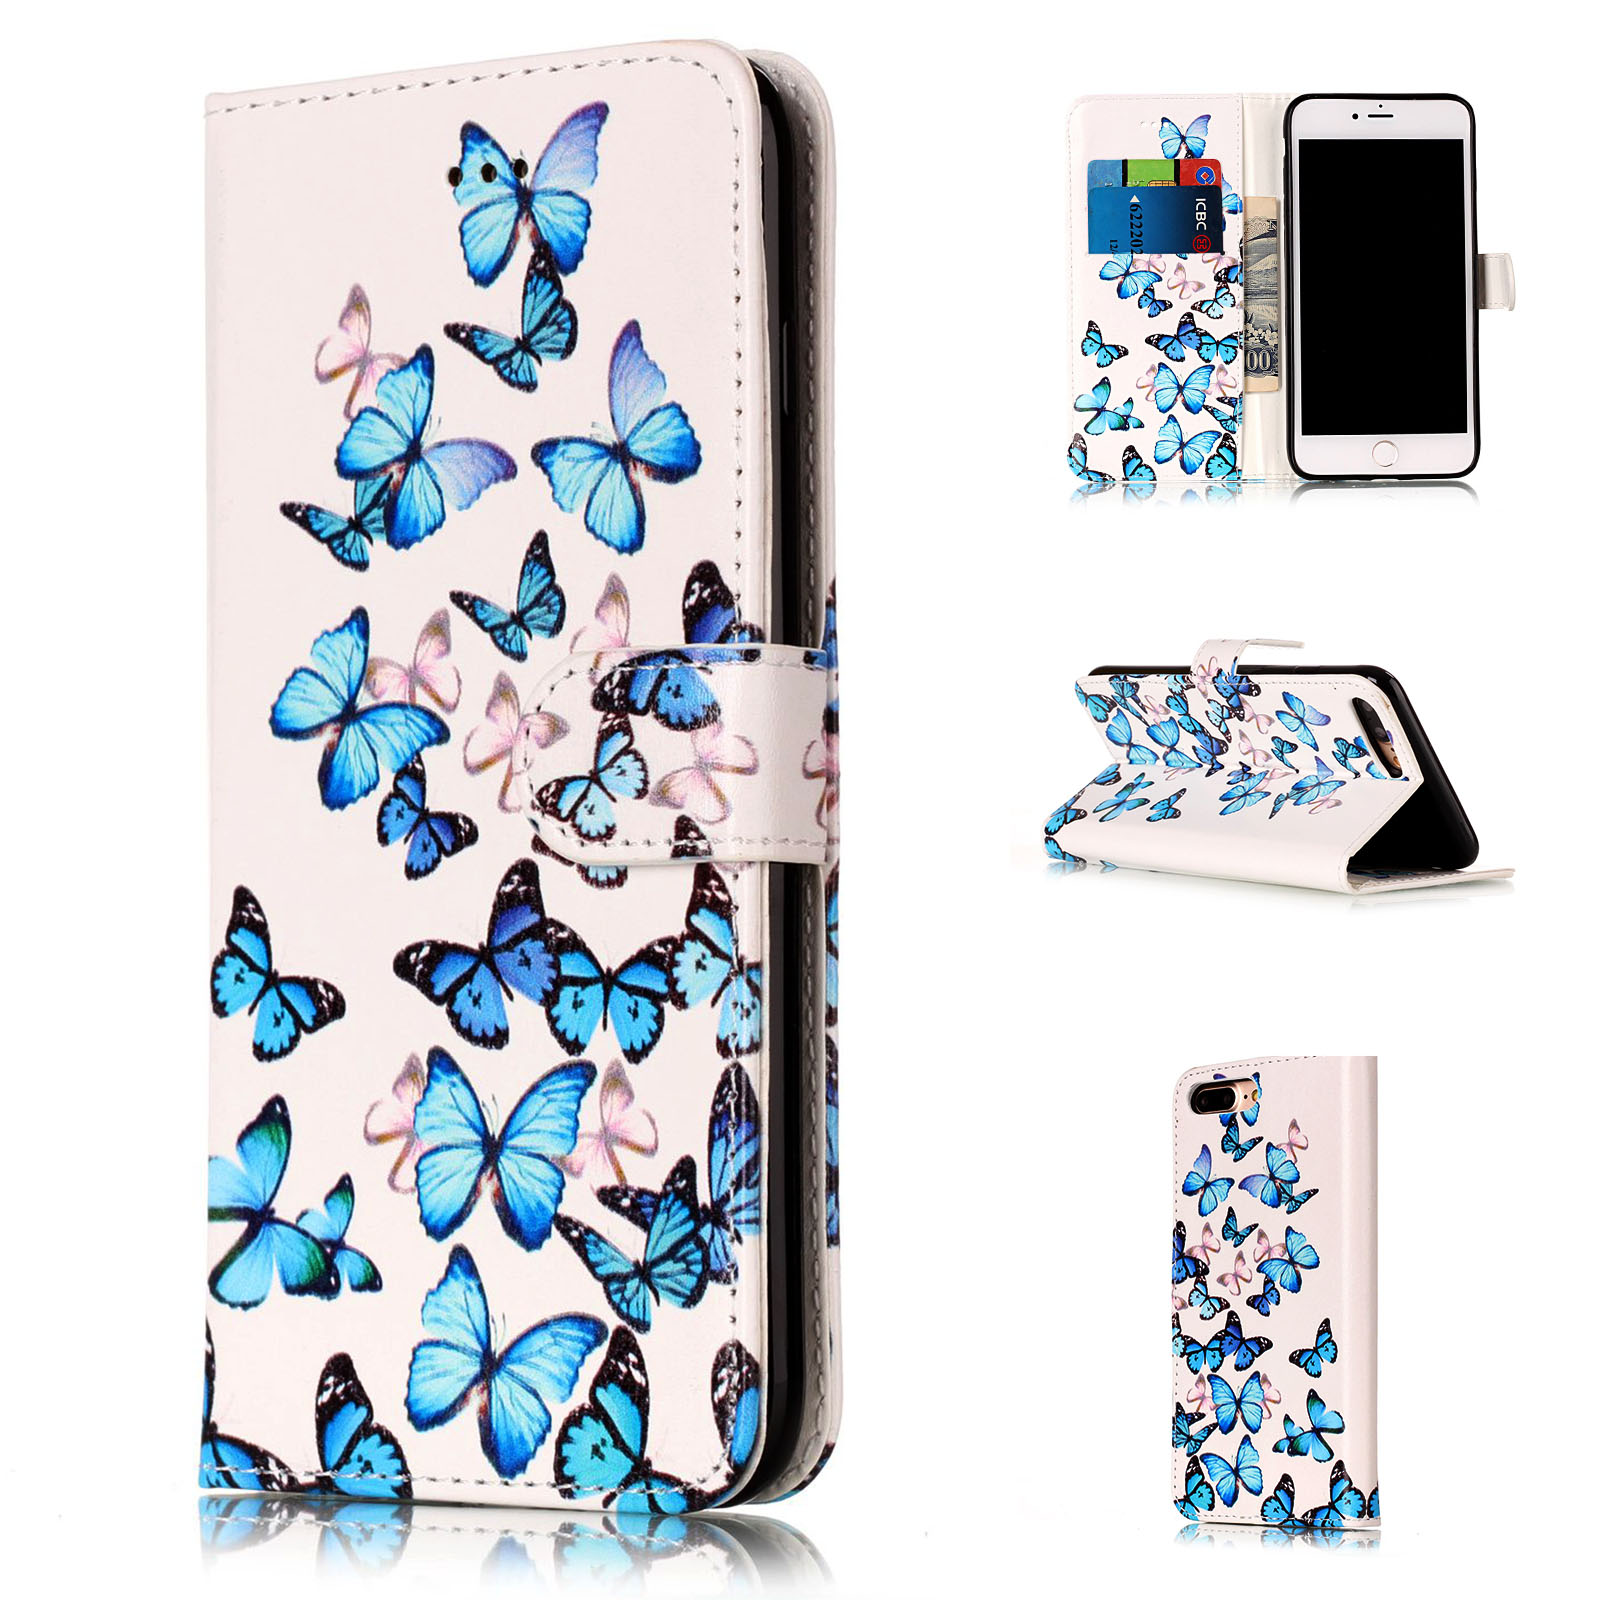 Hybrid Flip Wallet Leather Holster Case Cover Stand For iPod Touch 5th 6th Gen